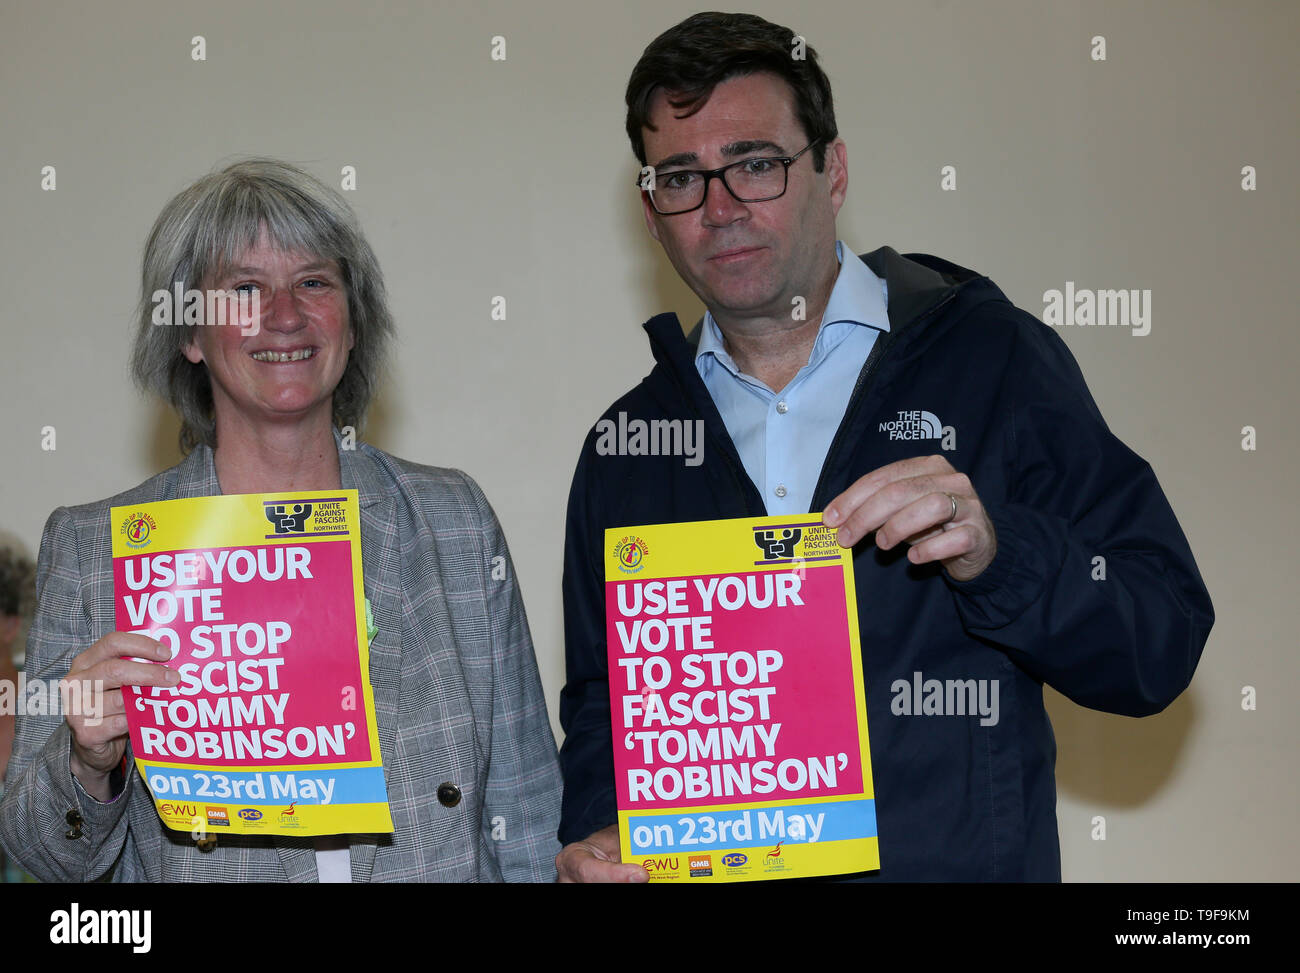 Manchester, UK, 18th May, 2019.  Stand Up To Racism hold a rally opposing former leader of the English Defence League, Tommy Robinson who is standing for election in the European Elections.  Labour Mayor of Greater Manchester, Andy Burnham speaking at the rally said we should 'stand up to racism and vote in the EU elections to stop Tommy Robinson'.  Nahella Ashraf from SUTR chaired the rally and green party representative Wendy Olsen spoke. Central Buildings, Manchester. Credit: Barbara Cook/Alamy Live News Credit: Barbara Cook/Alamy Live News - Stock Image